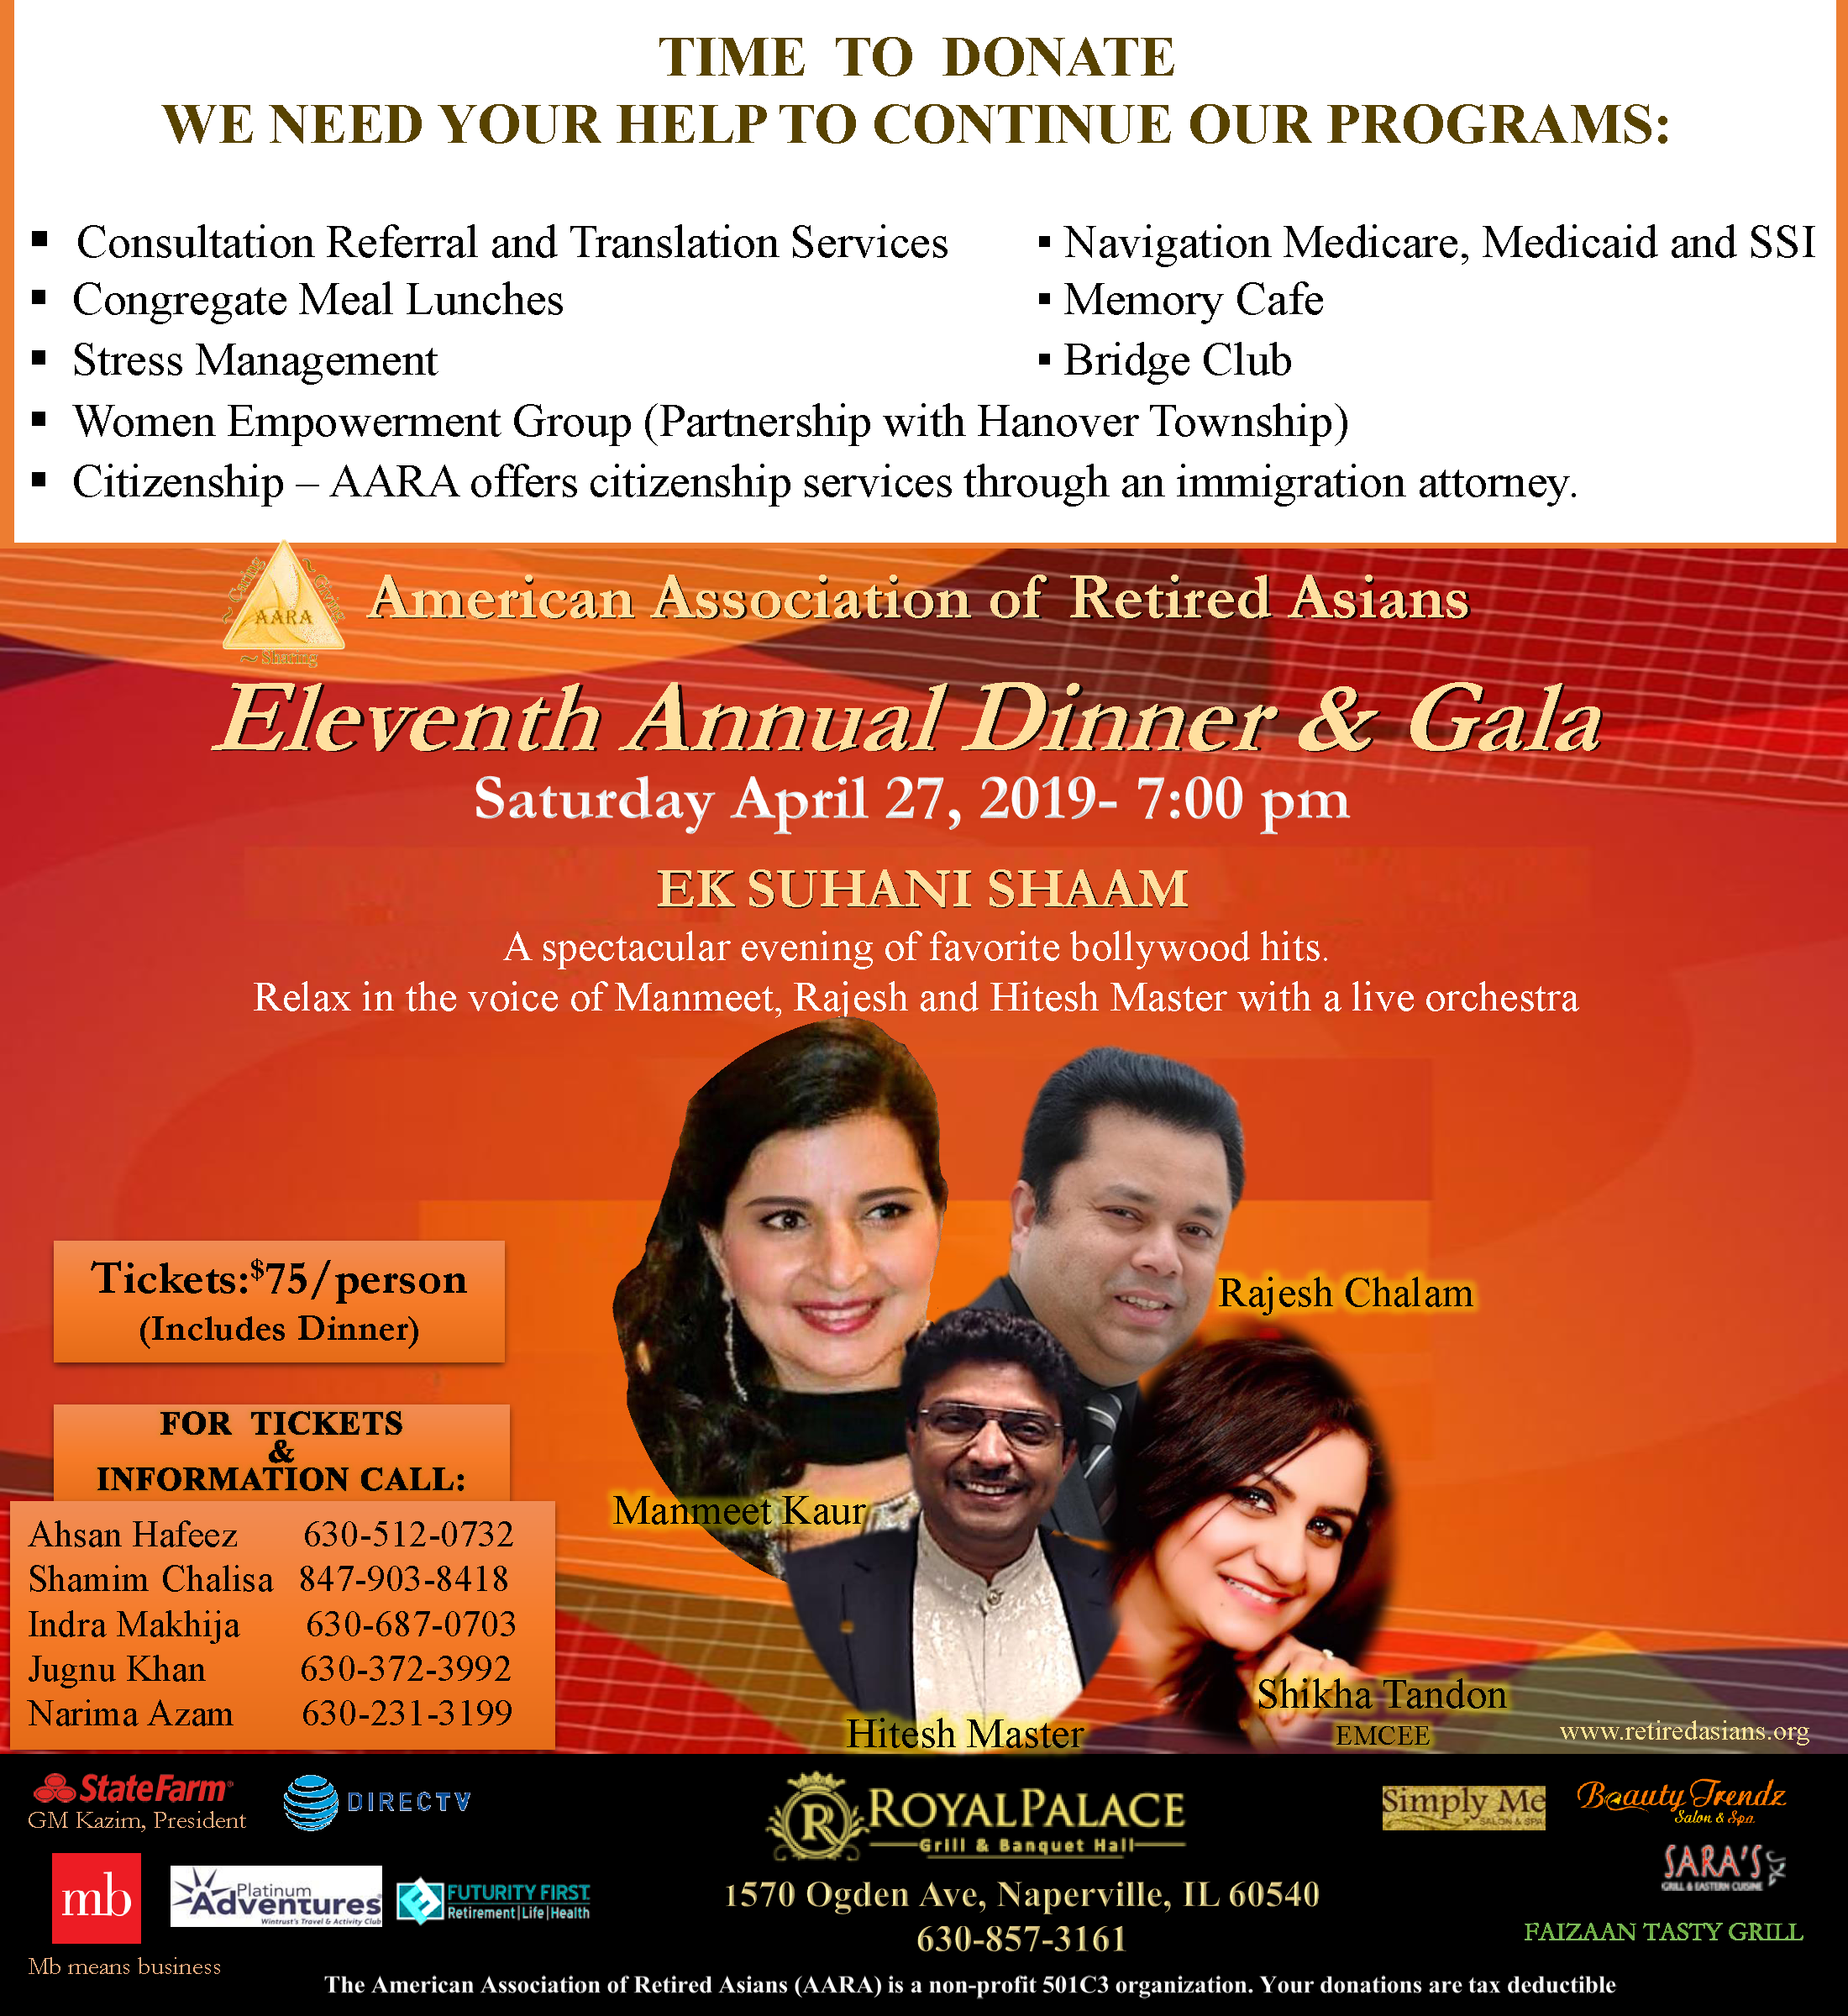 AARA ELEVENTH ANNUAL DINNER & GALA